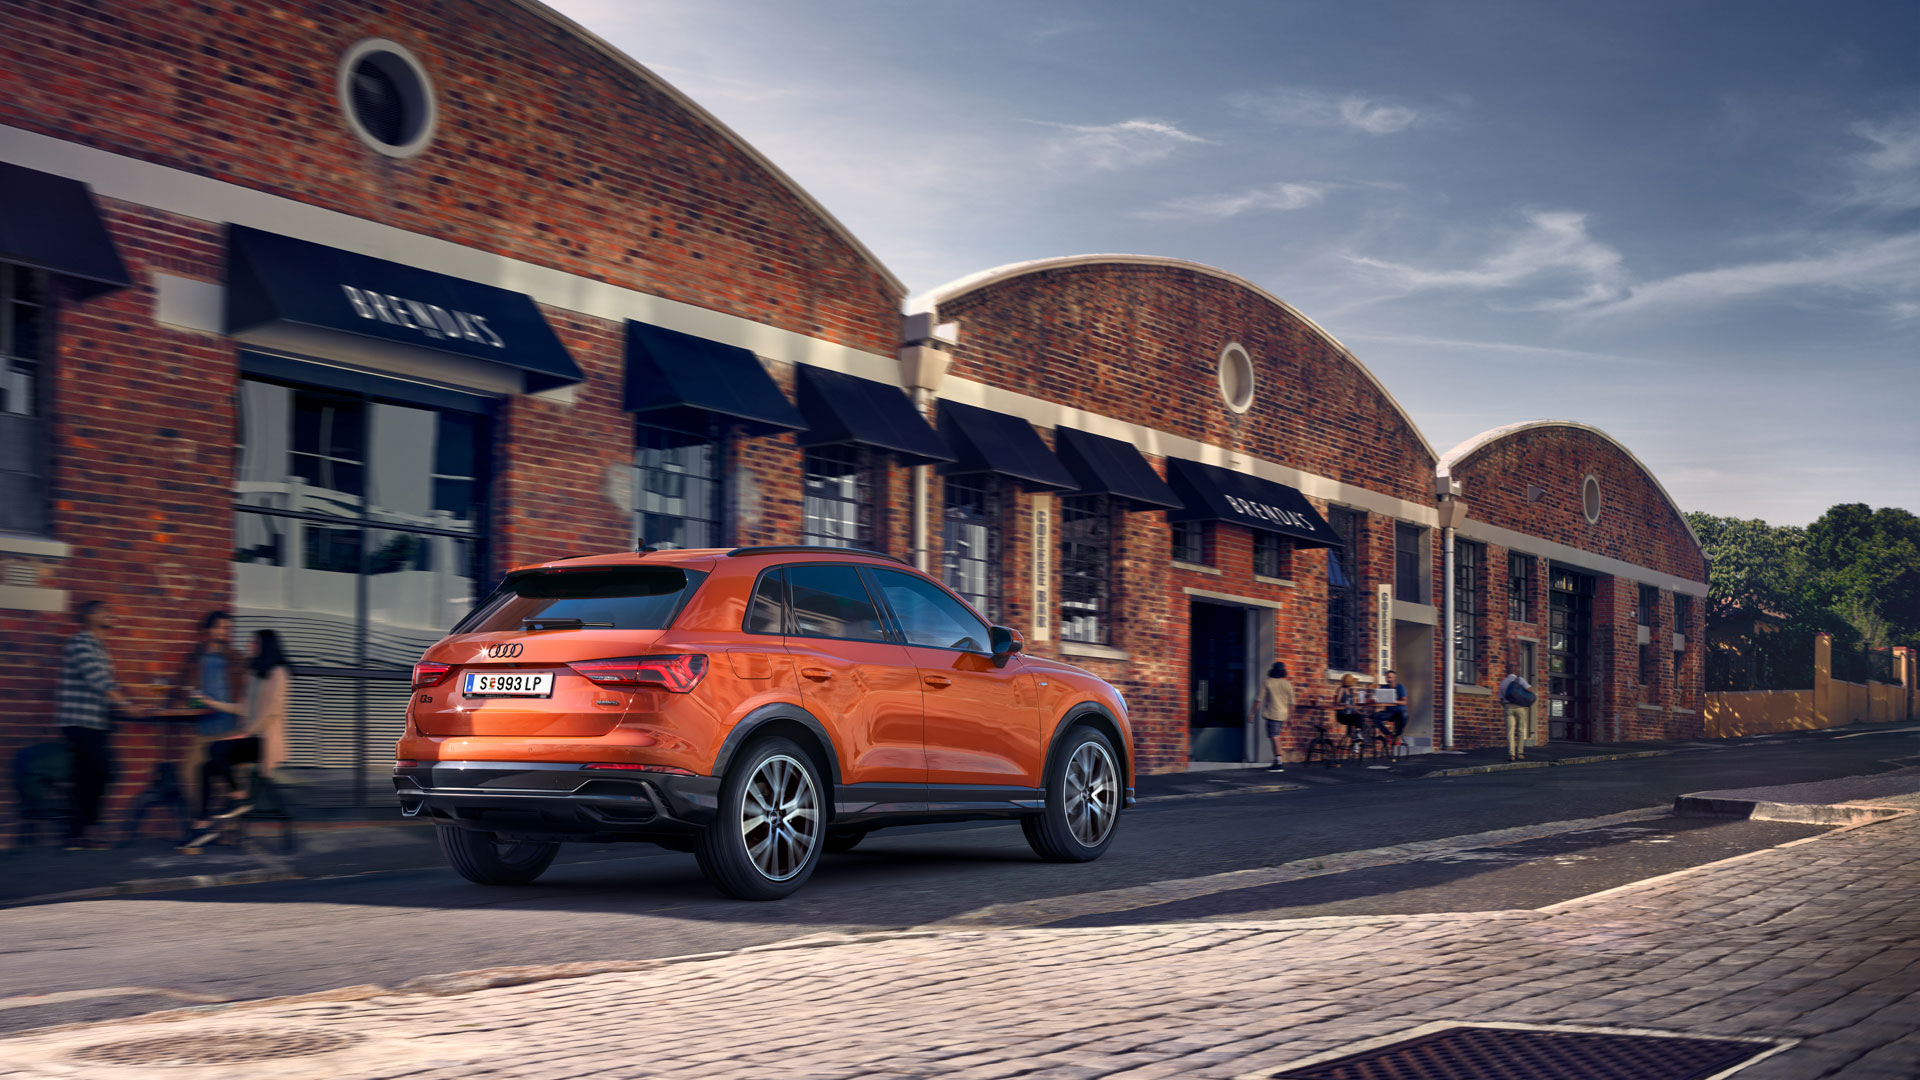 Audi Q3 Heckansicht orange